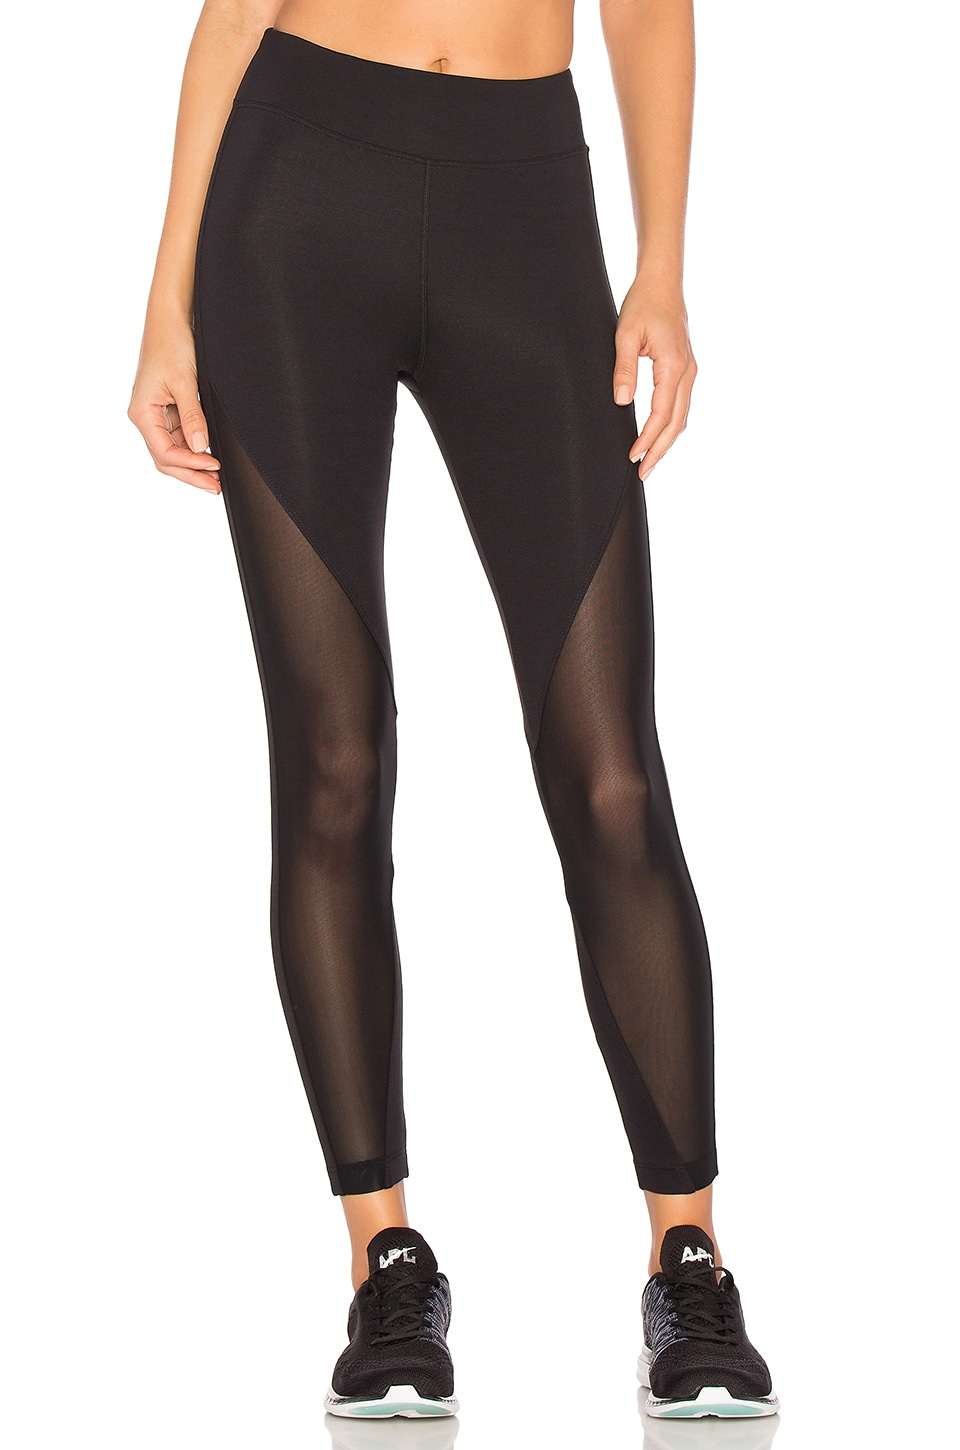 KORAL Lucent Legging in Black